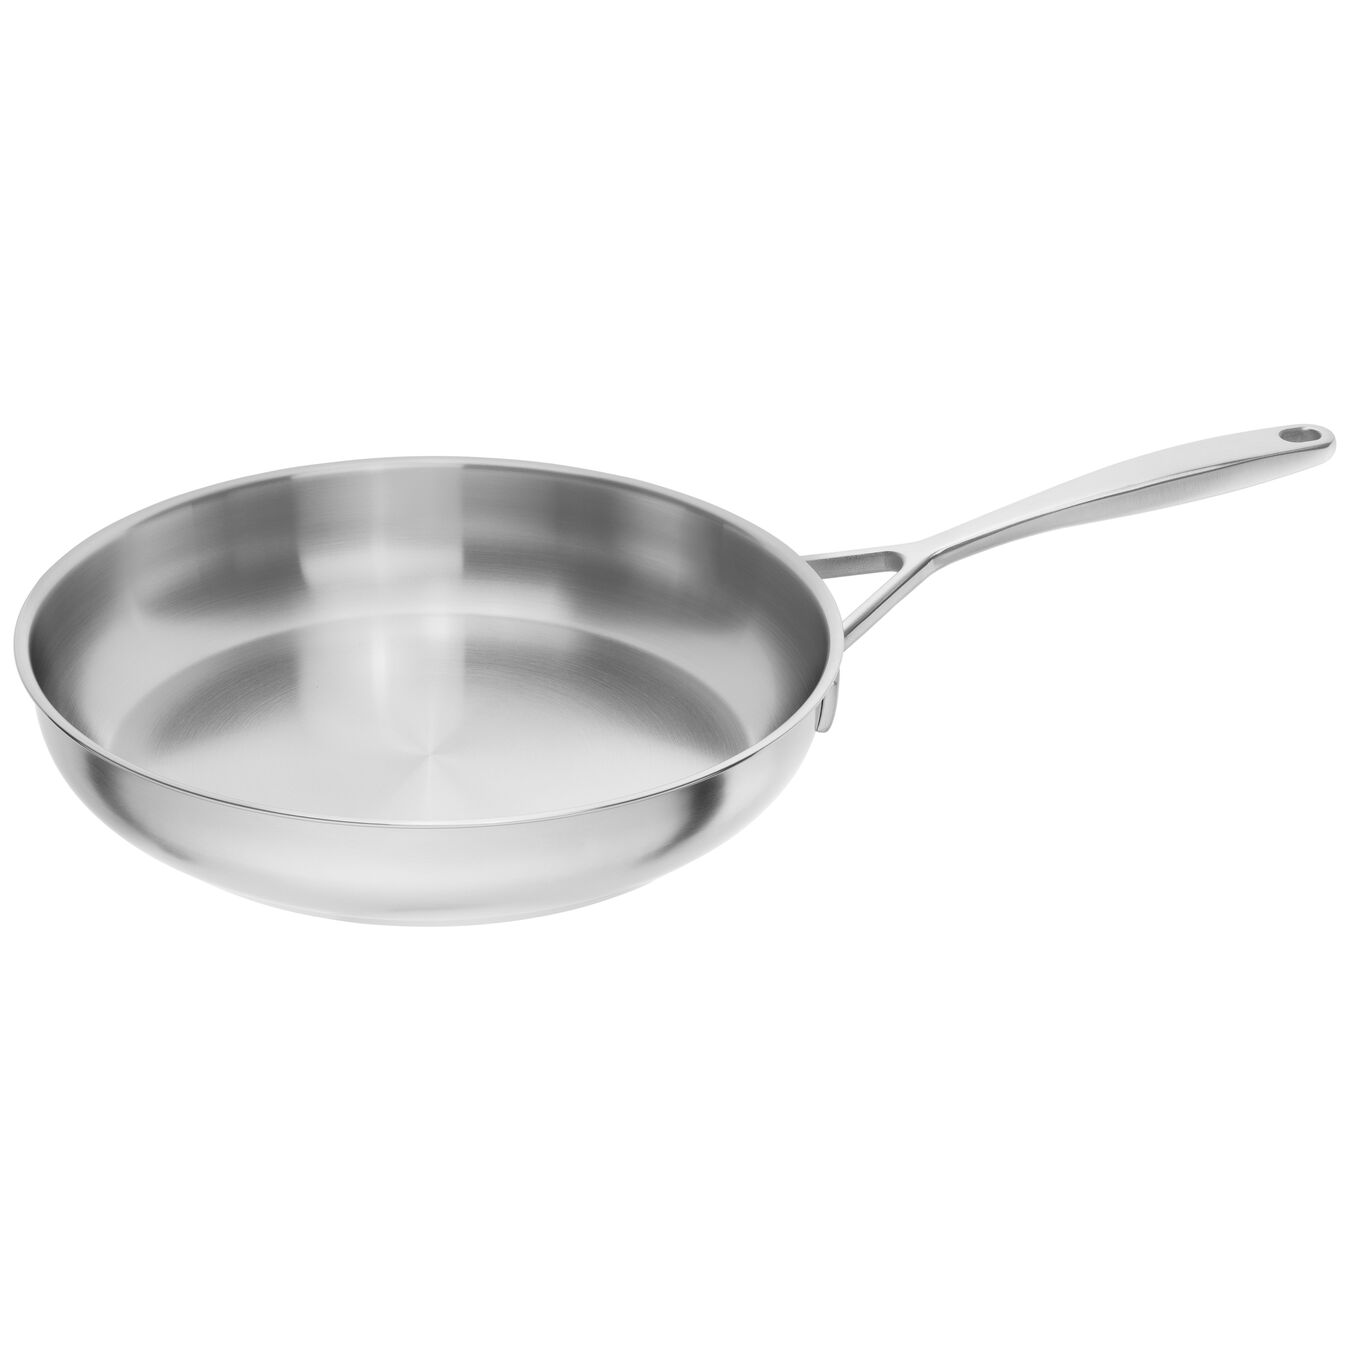 Poêle 26 cm, Inox 18/10, (no colour),,large 1